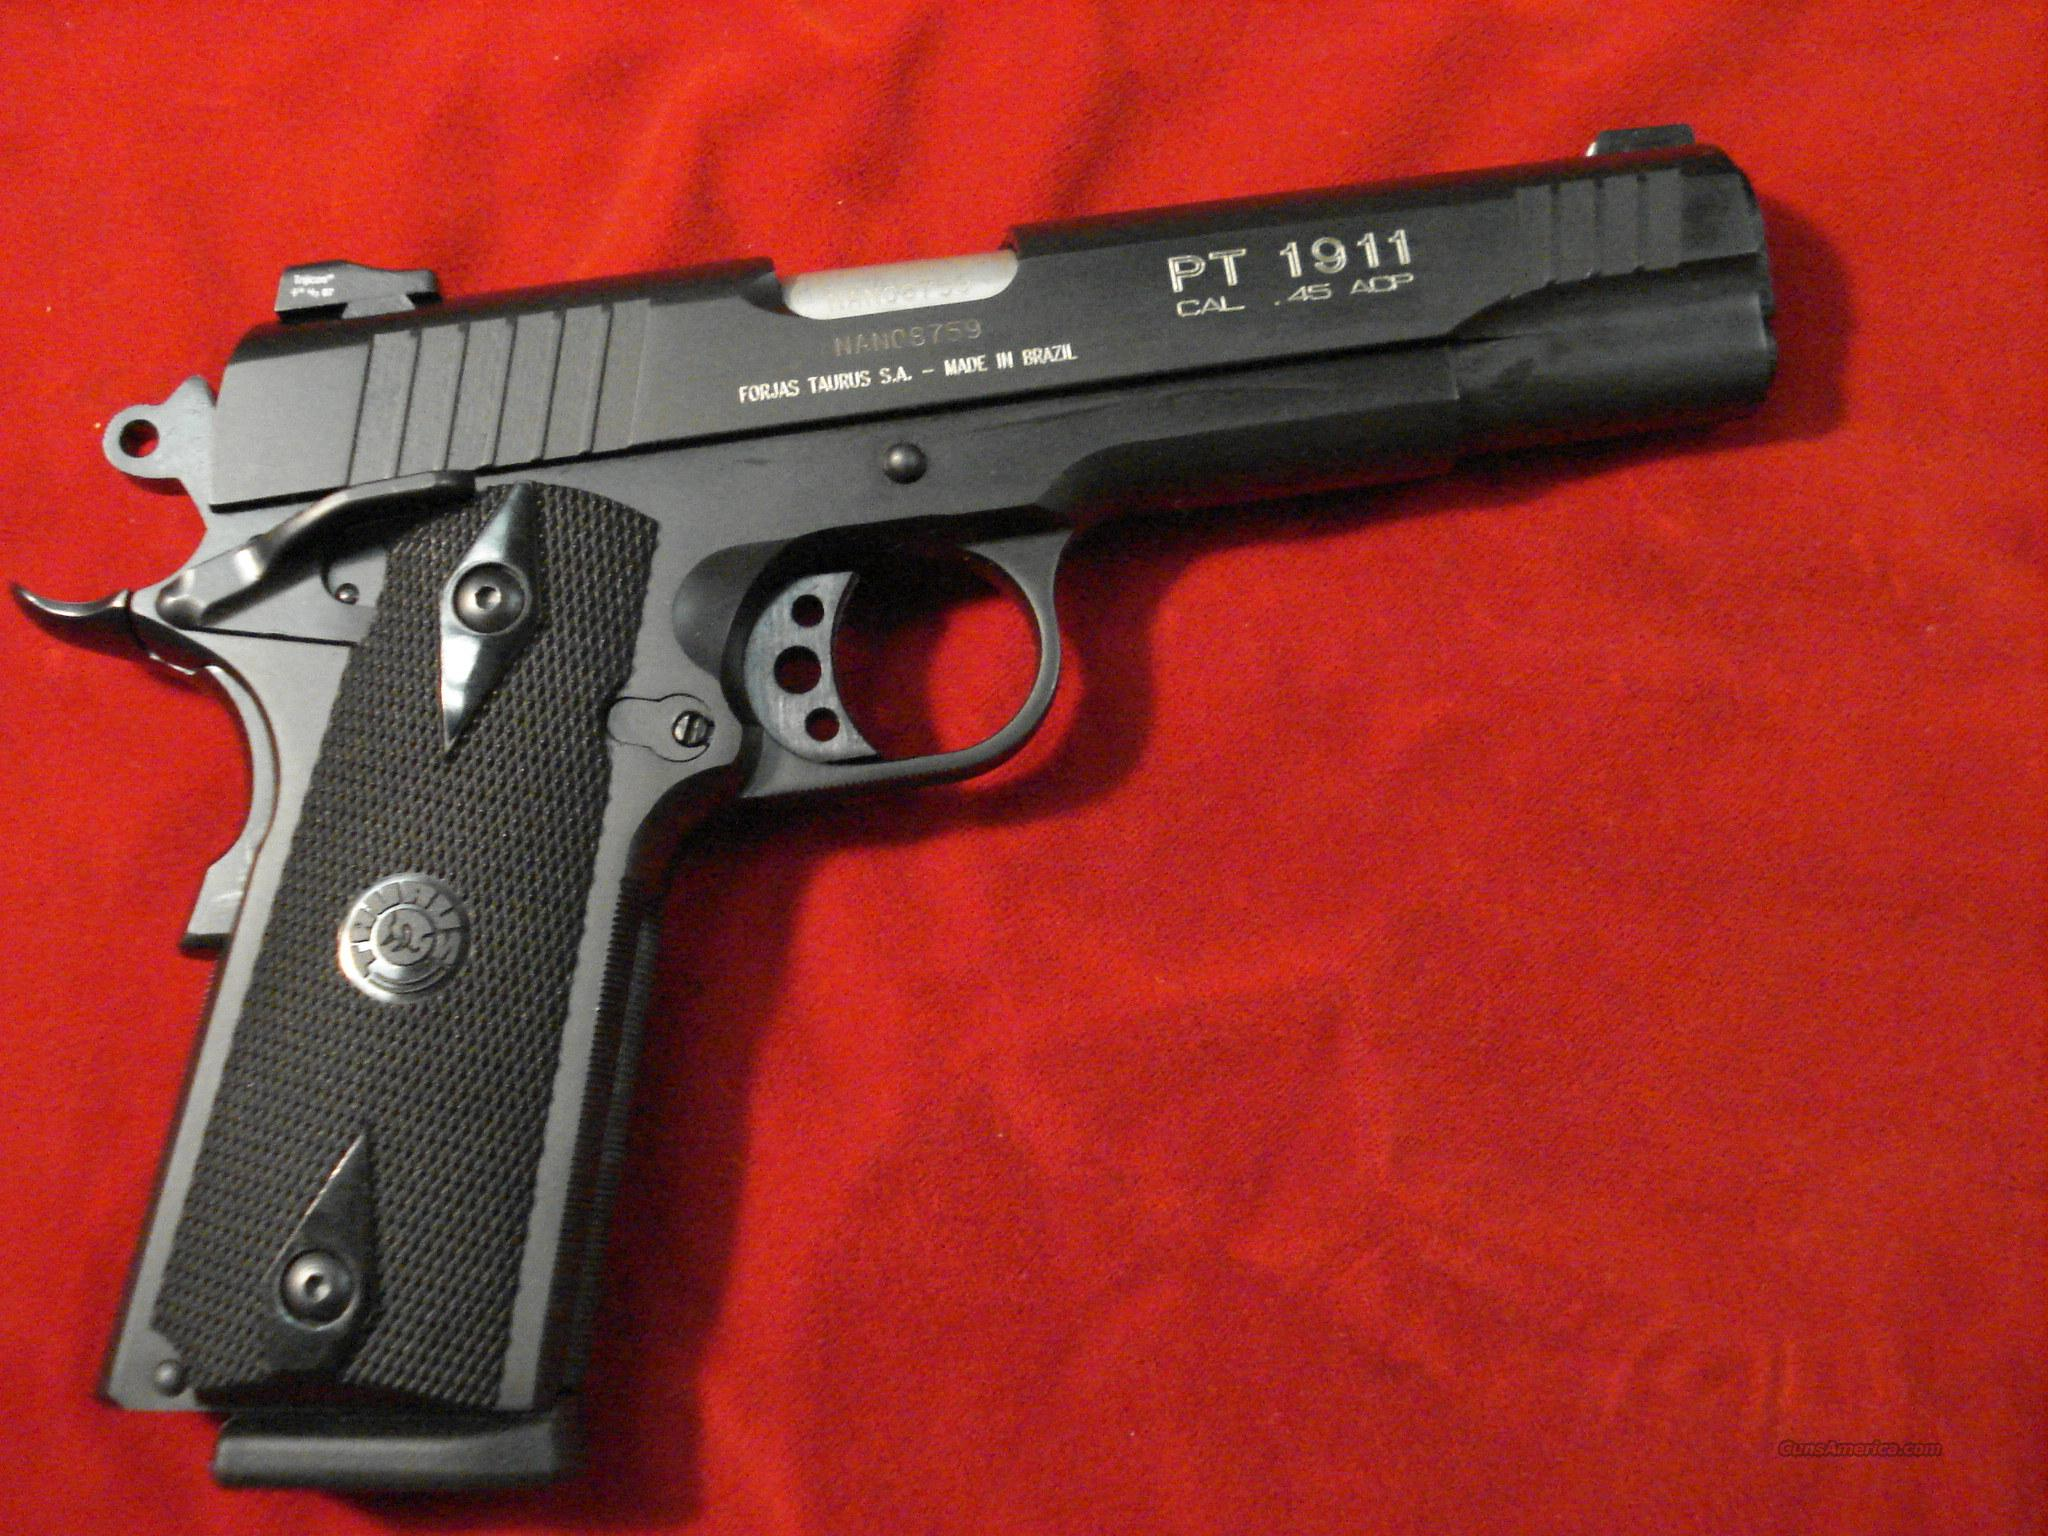 TAURUS NEW 1911B WITH TRIJICON NIGHT SIGHTS  Guns > Pistols > Taurus Pistols/Revolvers > Pistols > Steel Frame